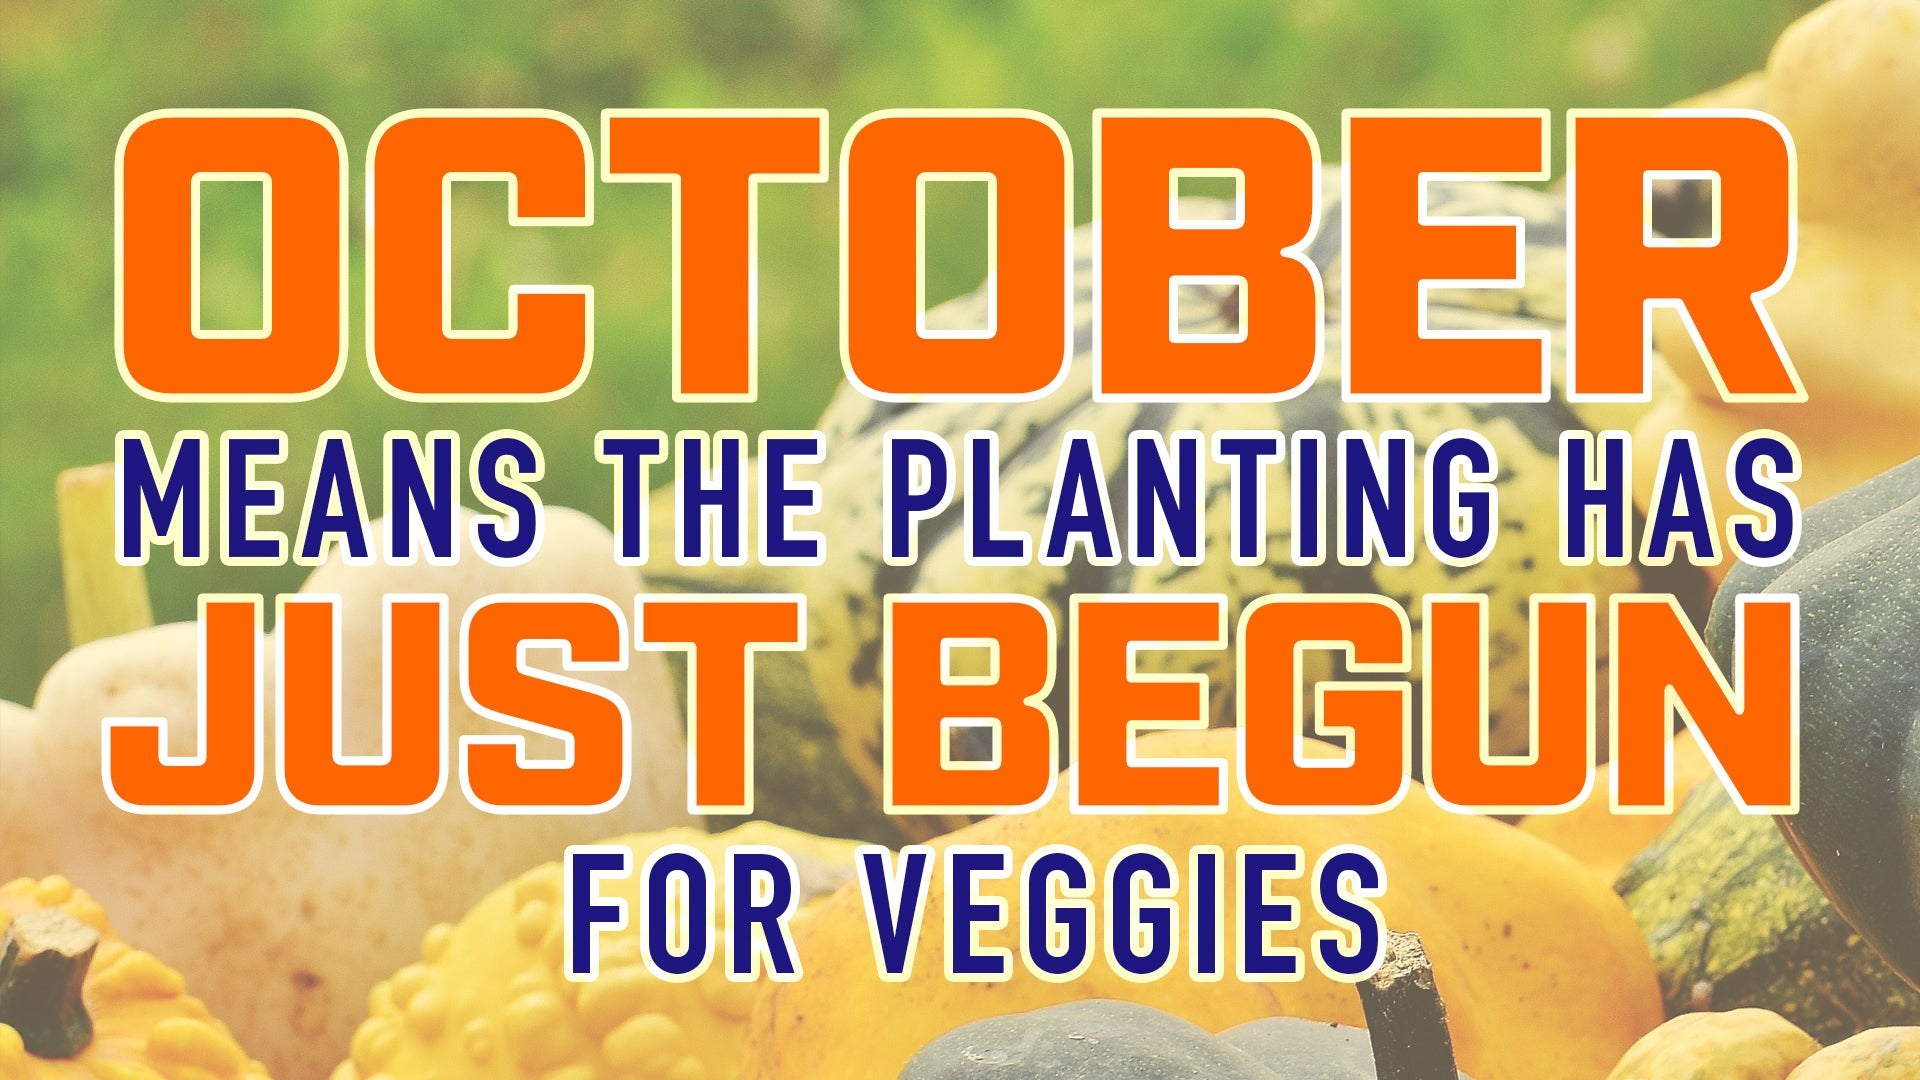 October means planting has just begun for veggies